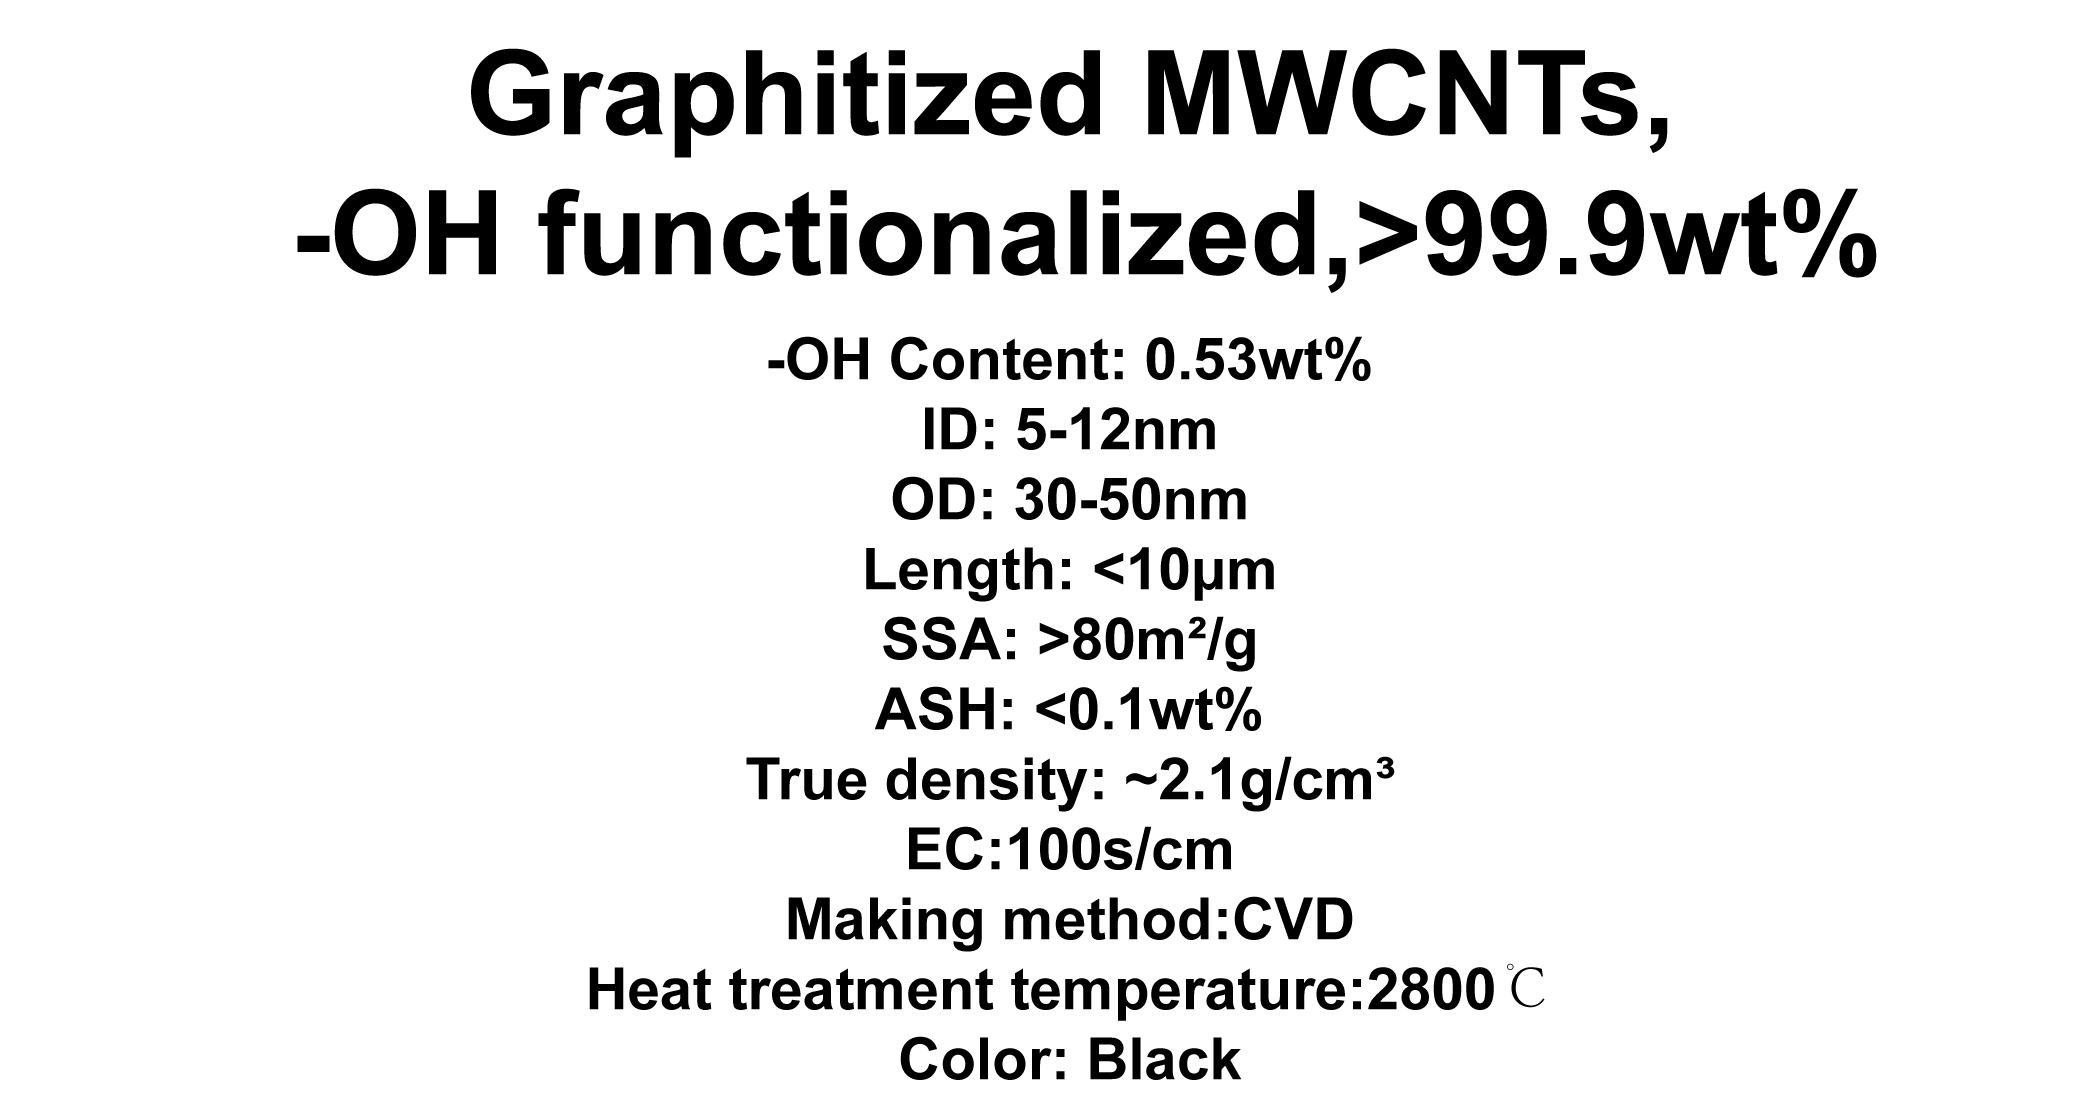 Graphitized MWCNTs, -OH functionalized (TNGMH7)